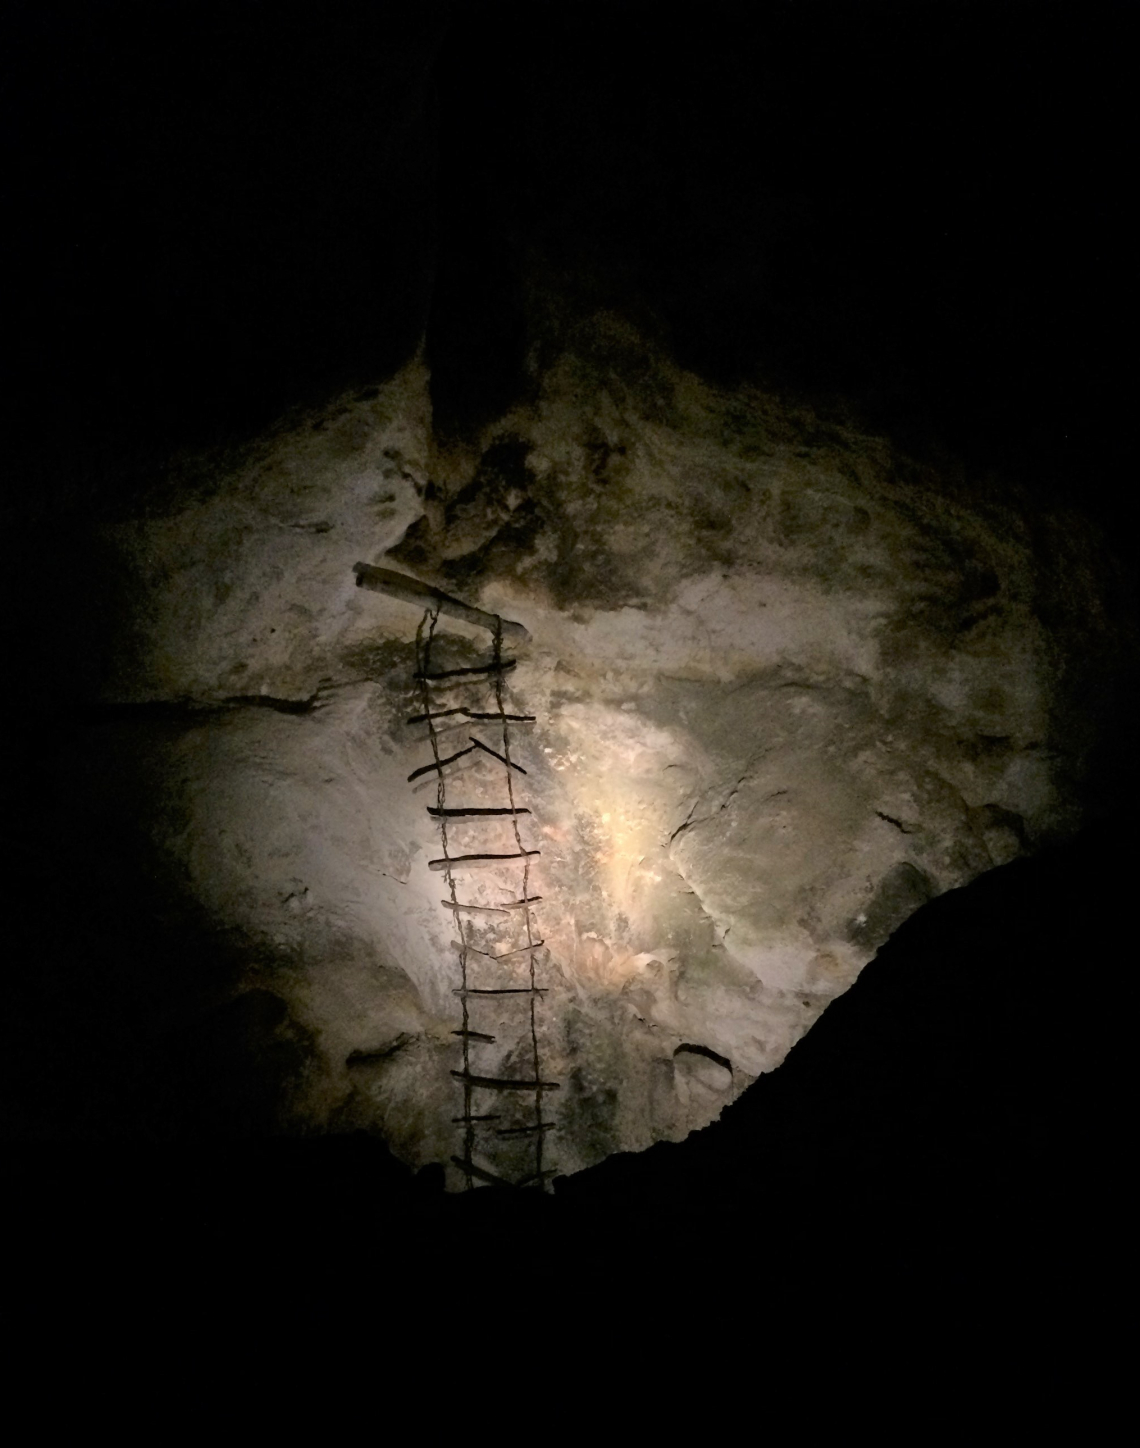 Ladder left in place from an early cave explorer. Passed multiple inspections.